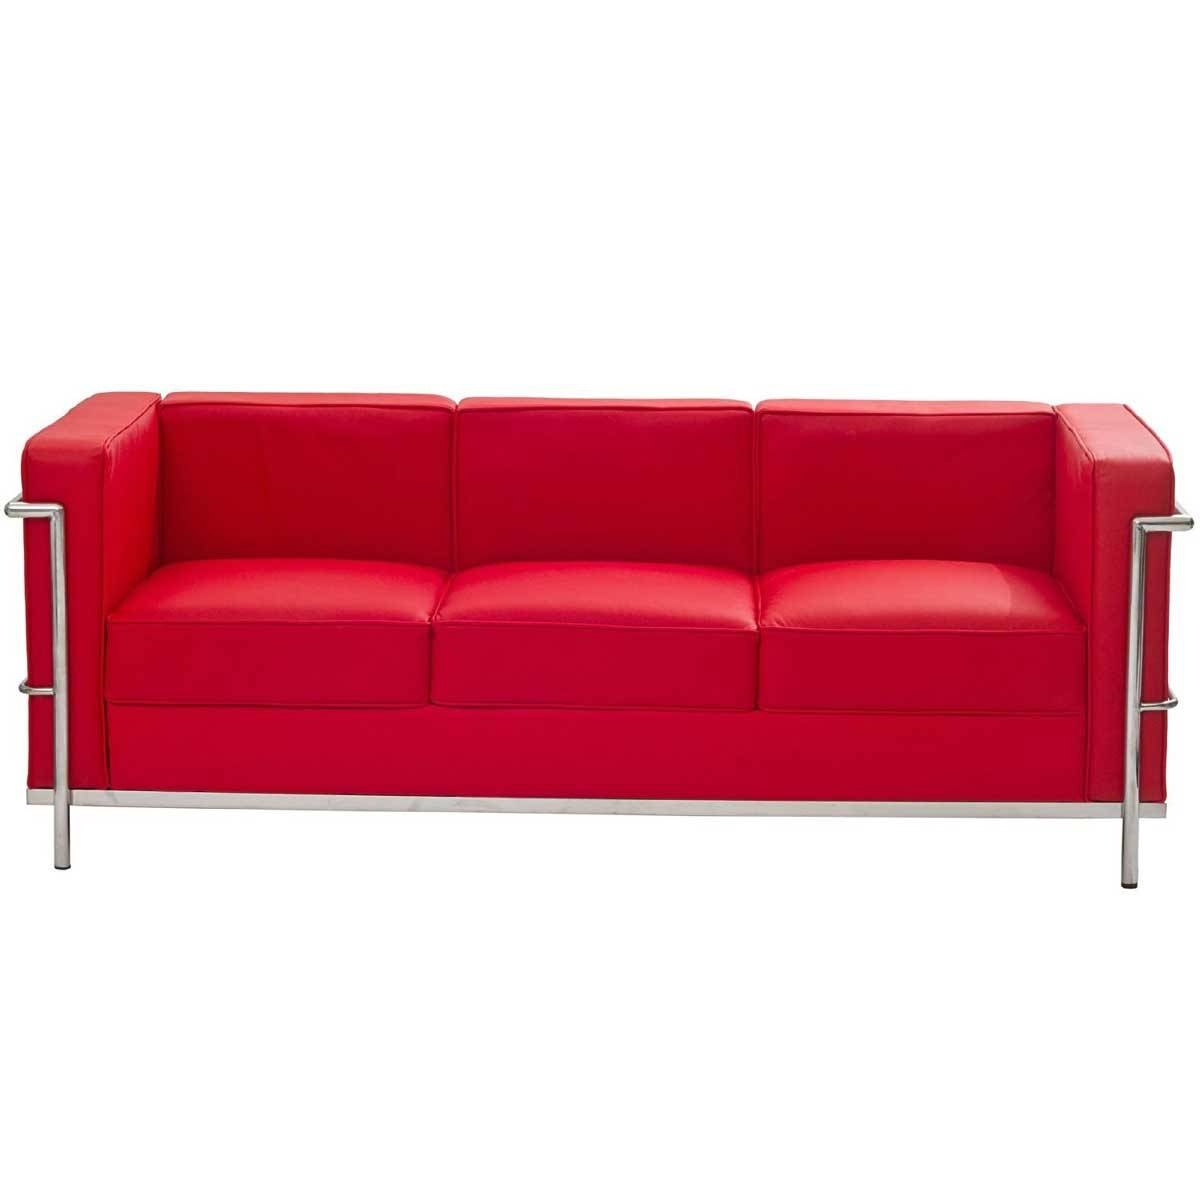 Latest Red Leather Sofas For Sale #4386 for Sofas With Chrome Legs (Image 11 of 15)